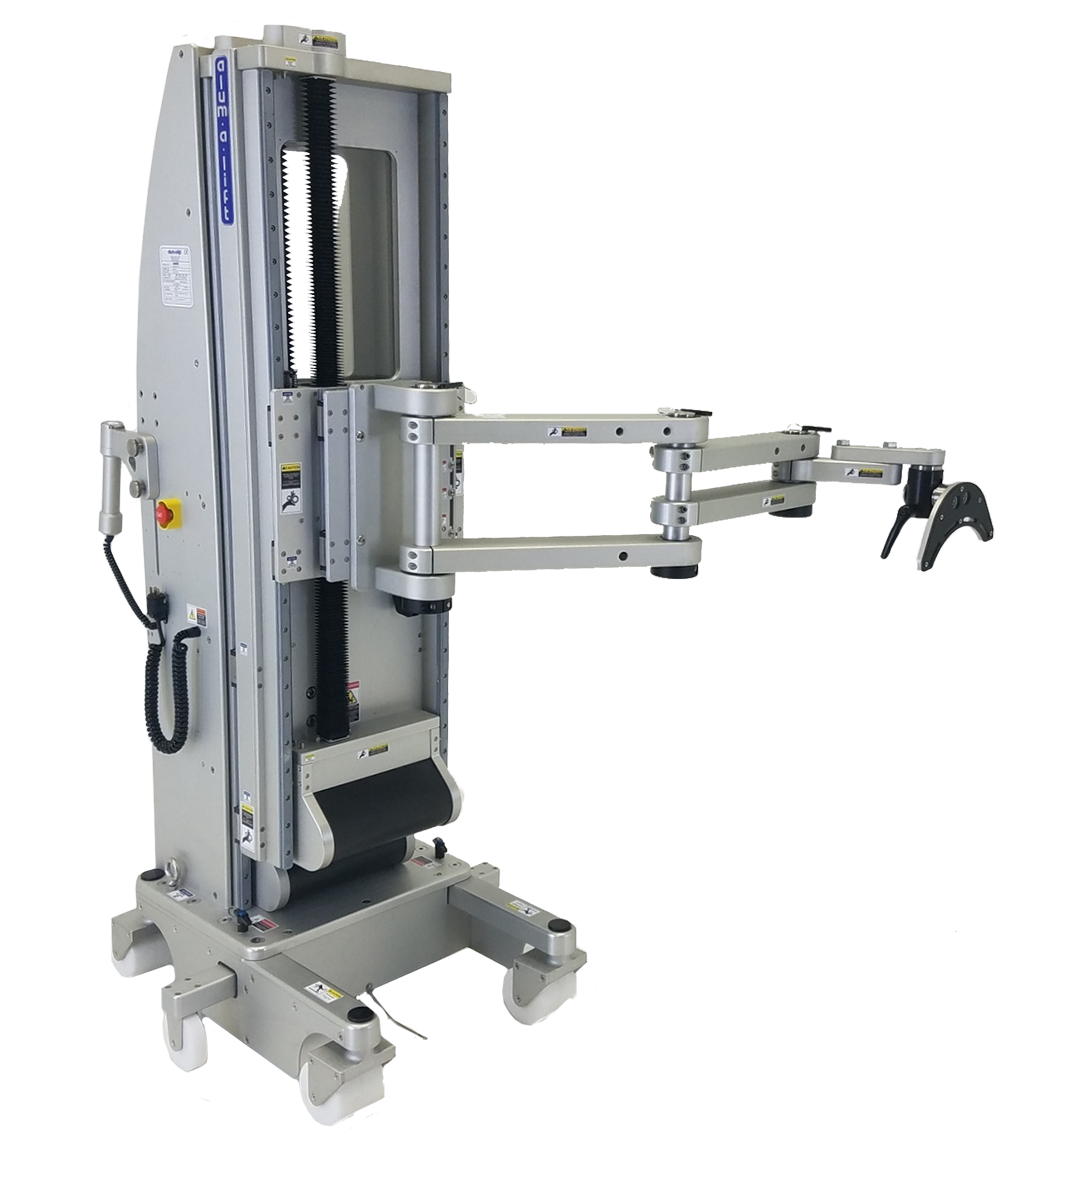 Semiconductor Lifting Equipment Solutions | Wafer Fab Lift | Alum-a-Lift